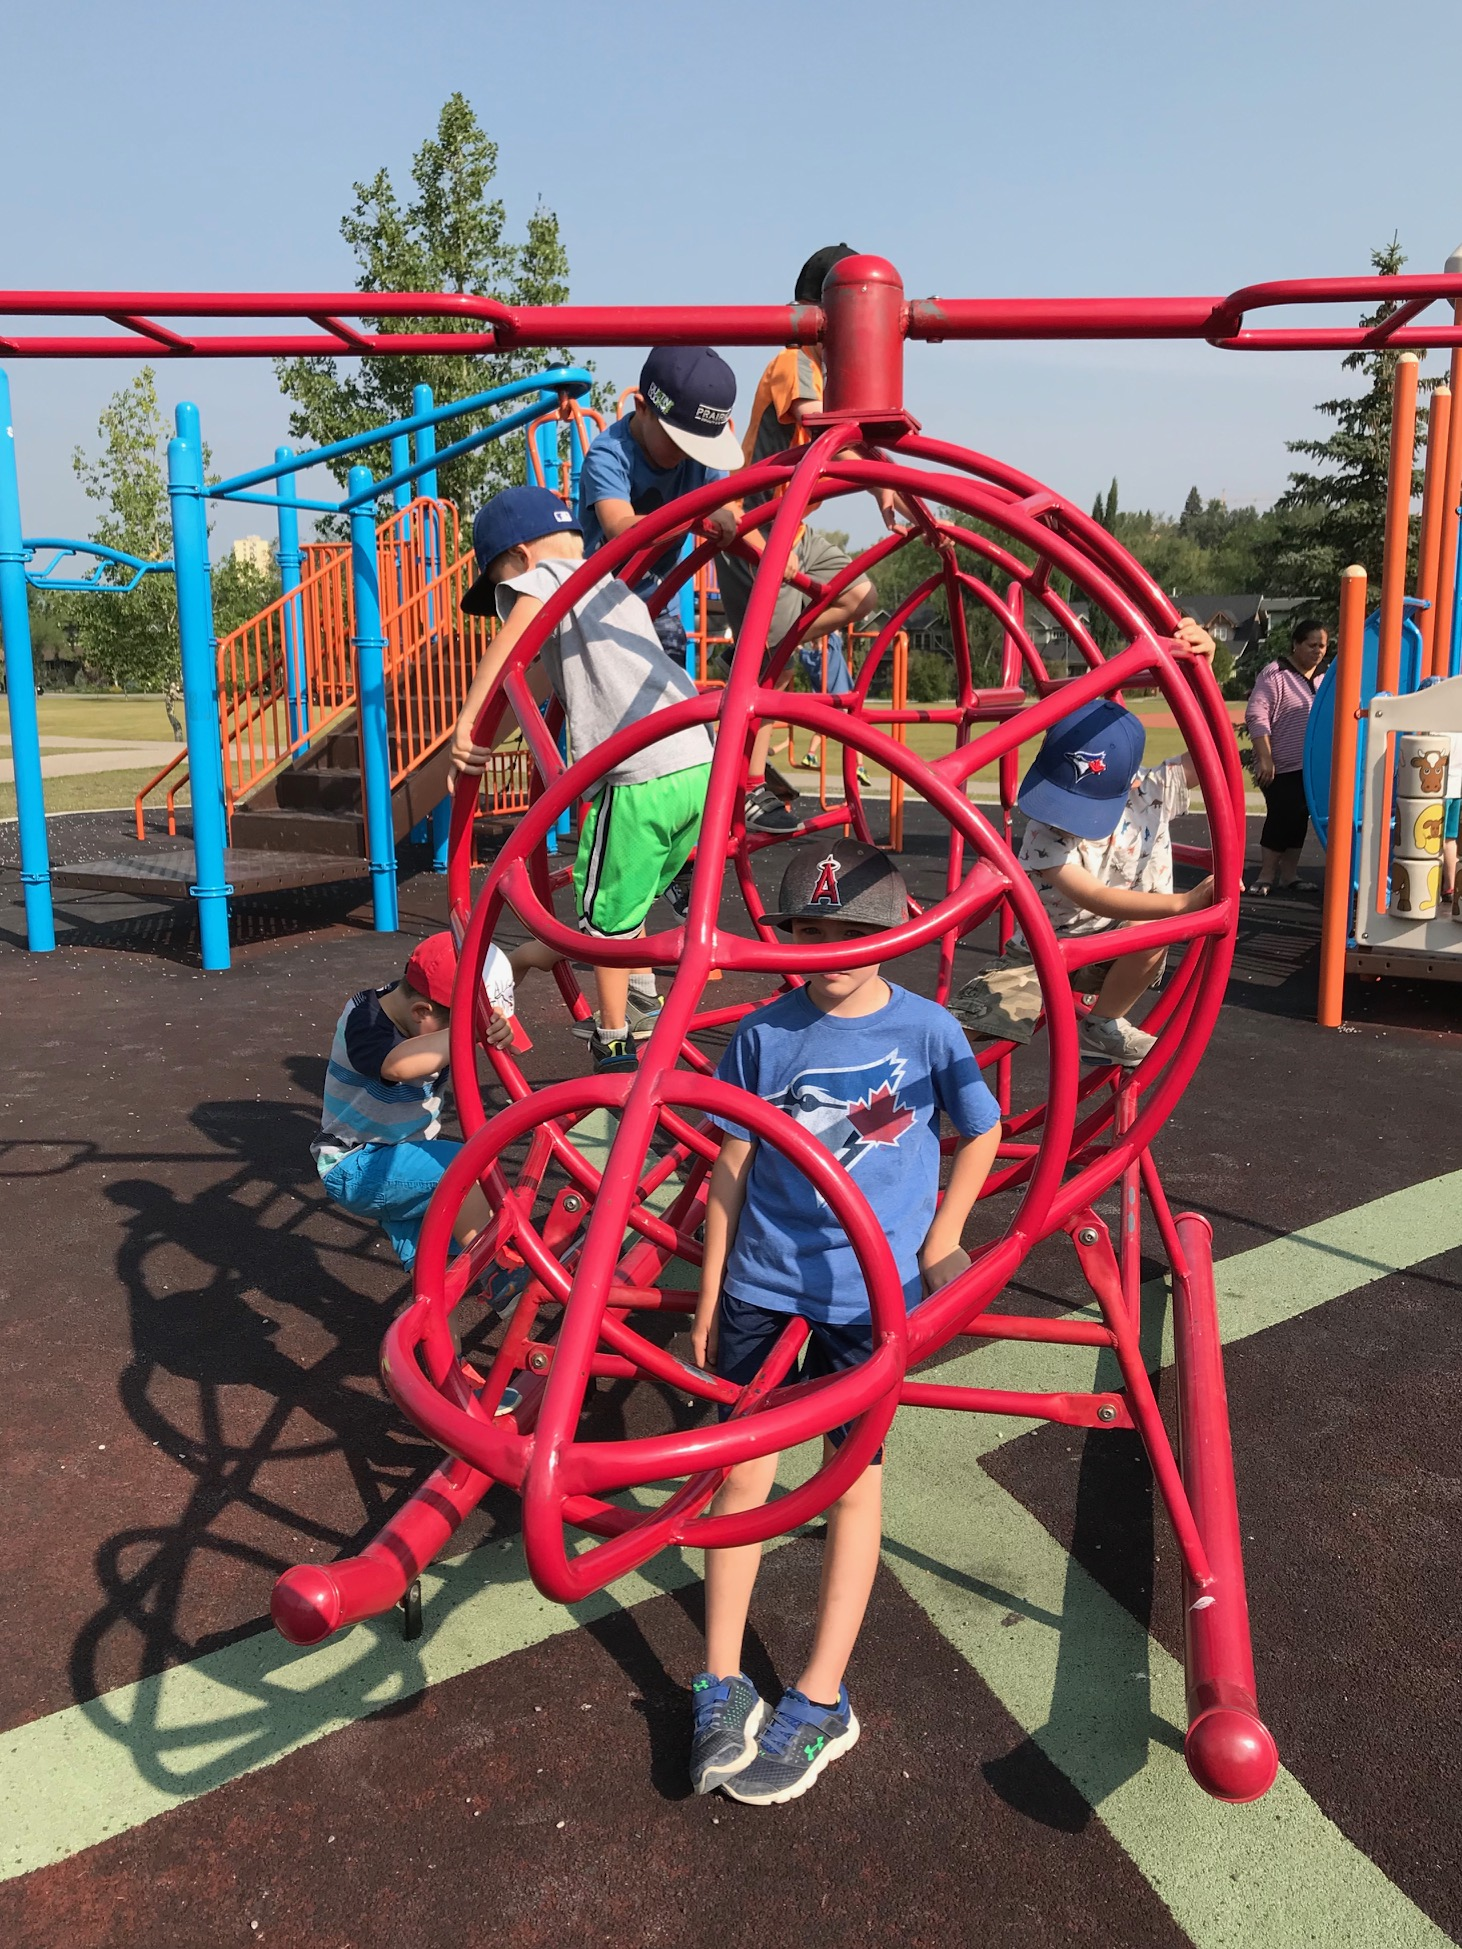 Helicopter Park in West Hillhurst is just one of hundreds of funky new neighbourhood playgrounds in Calgary.    Calgary has something like 1,200 city playgrounds for 185 neighbourhoods and that doesn't include school playgrounds.